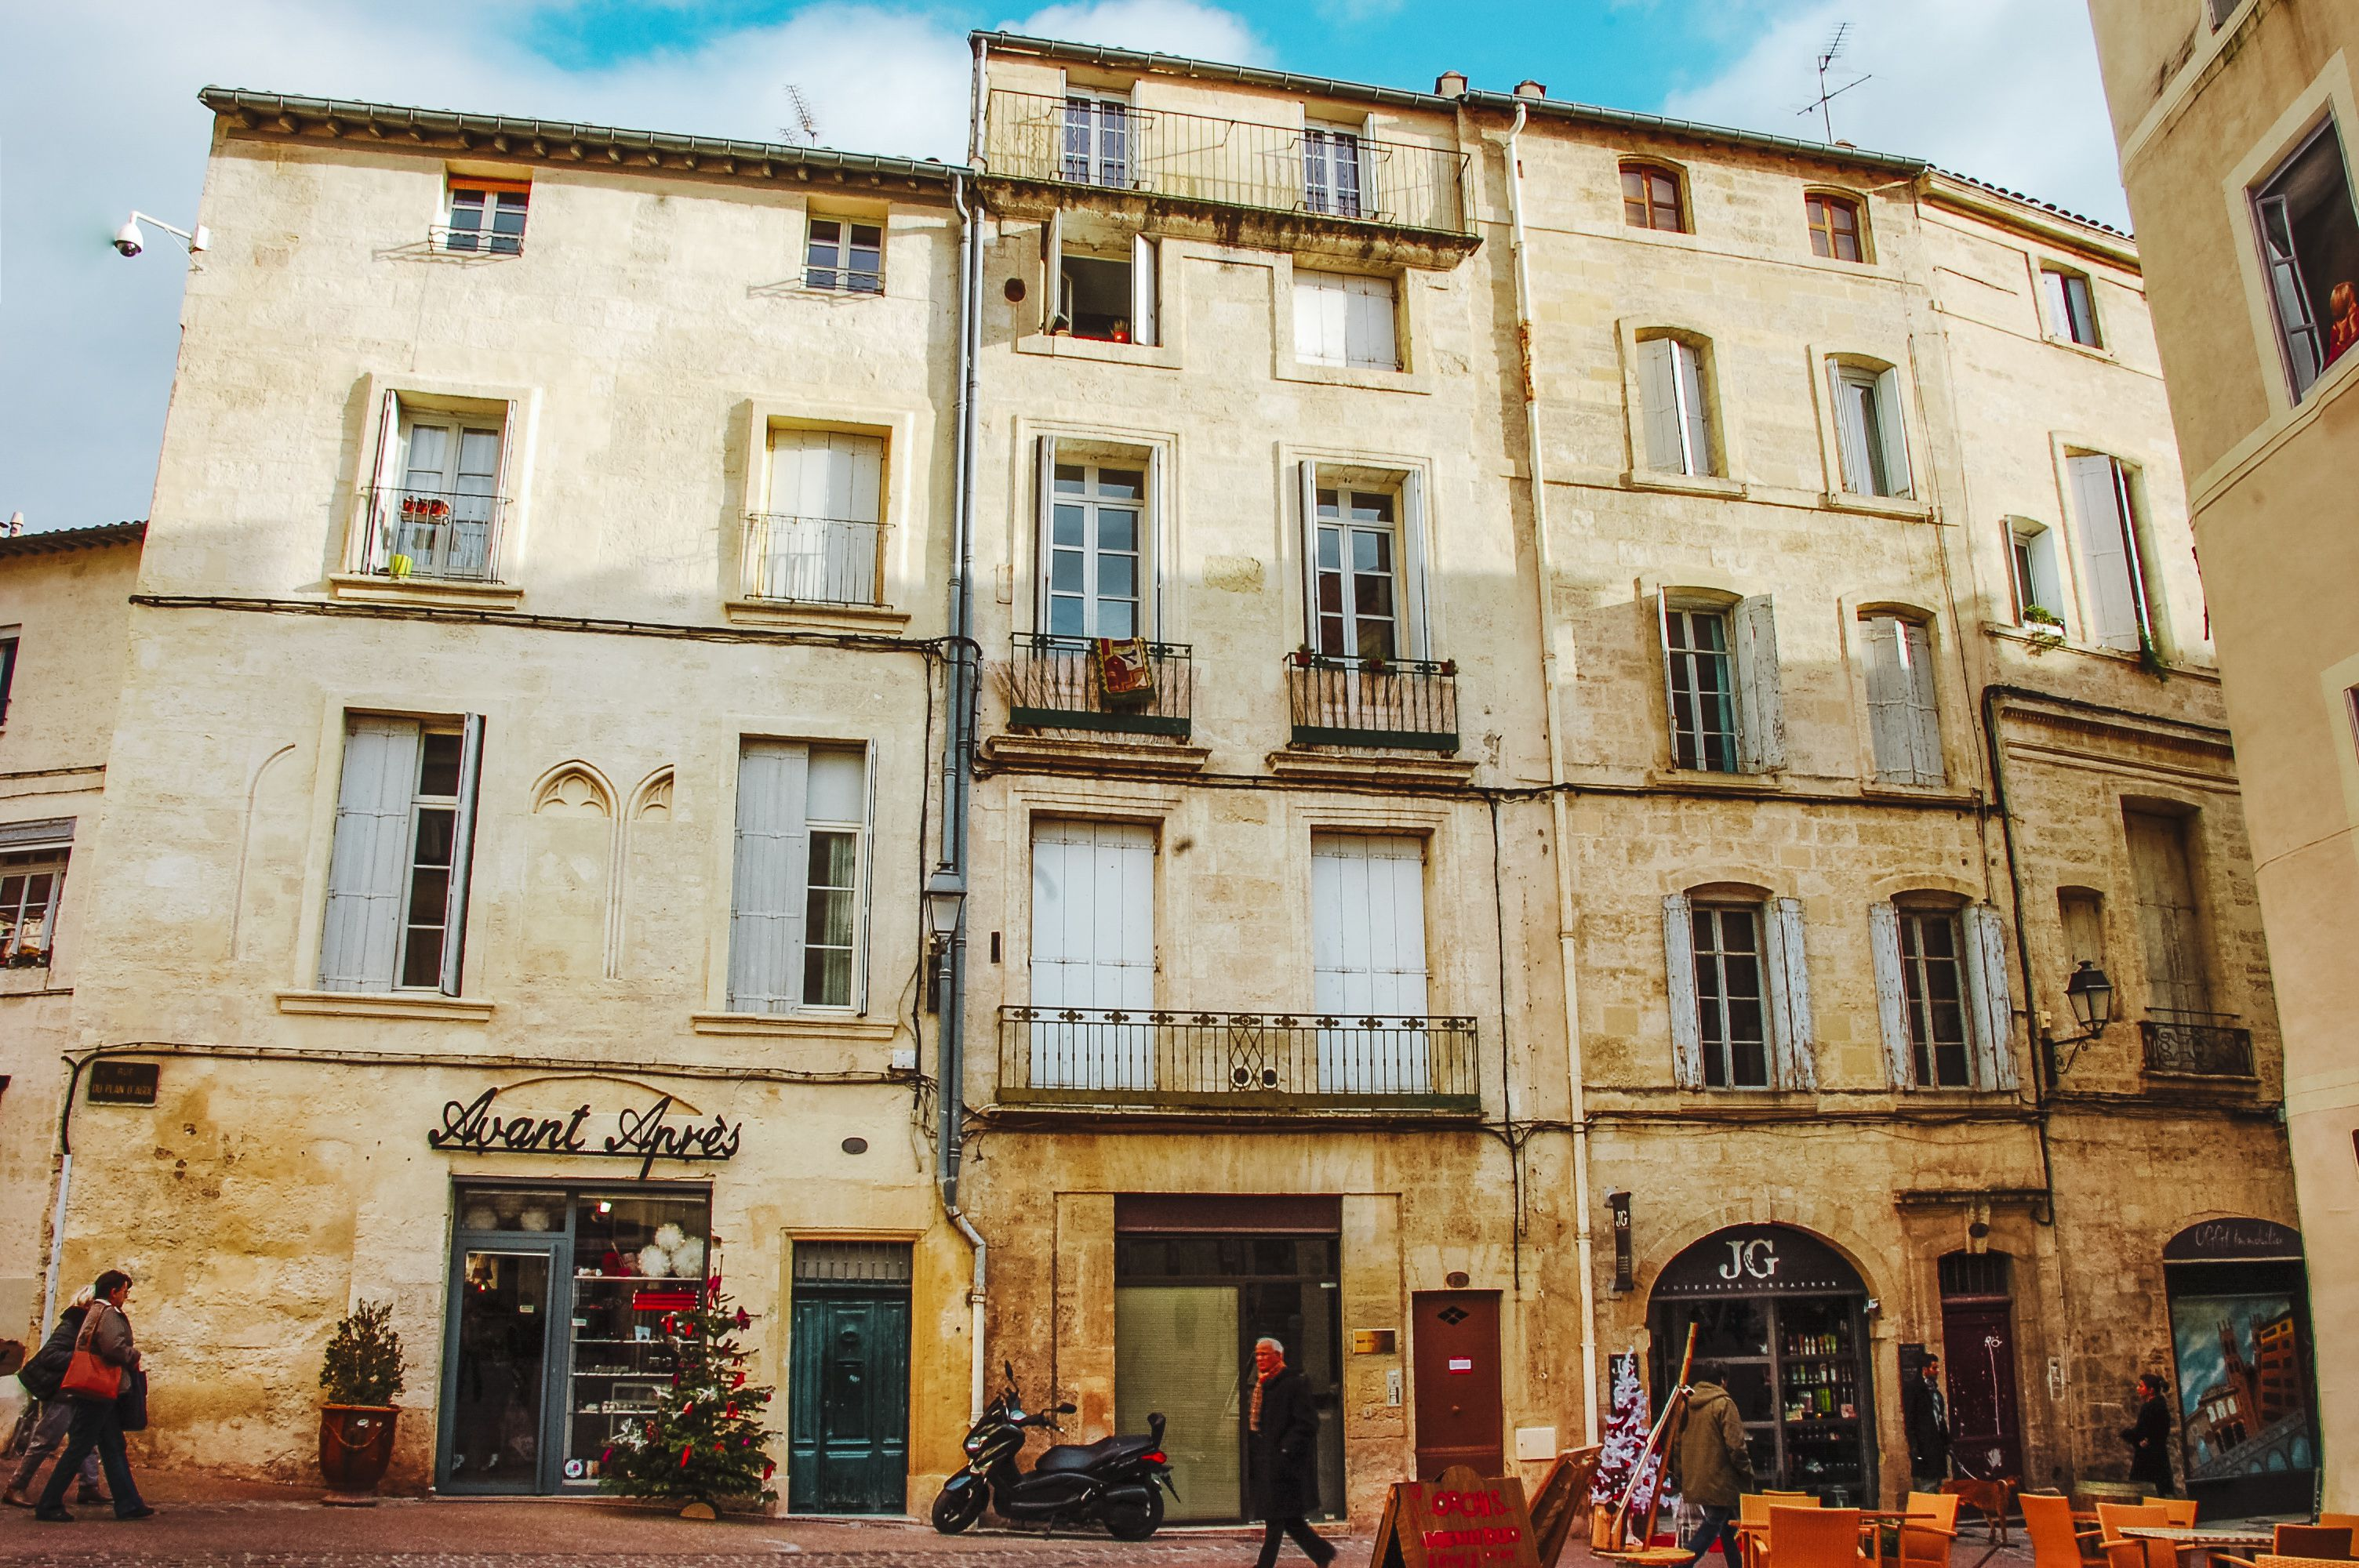 Old buildings in Montpellier